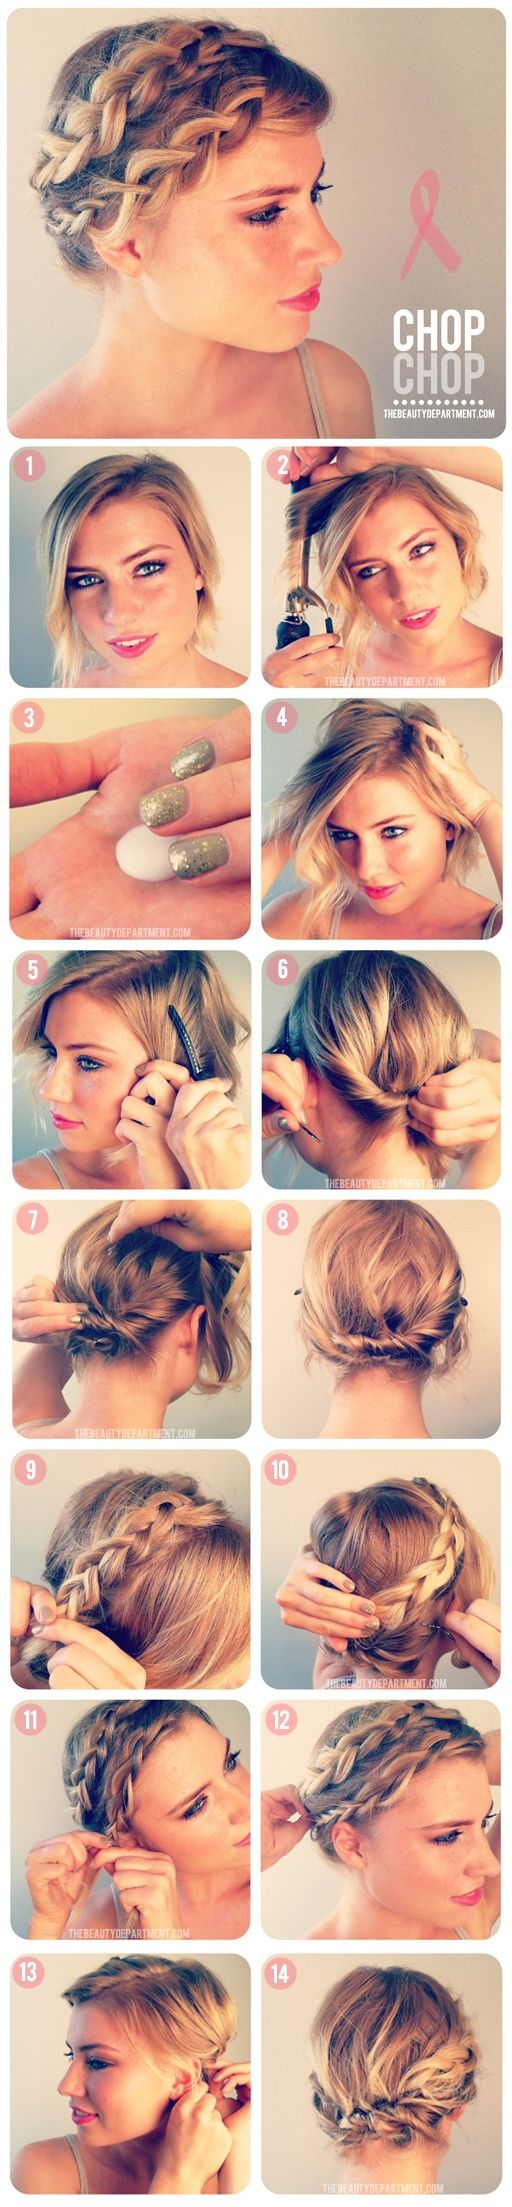 Ever wanted to donate your hair but afraid you wont know how to style it? Dont be! Heres an idea... #lusciouslocks #shorthair